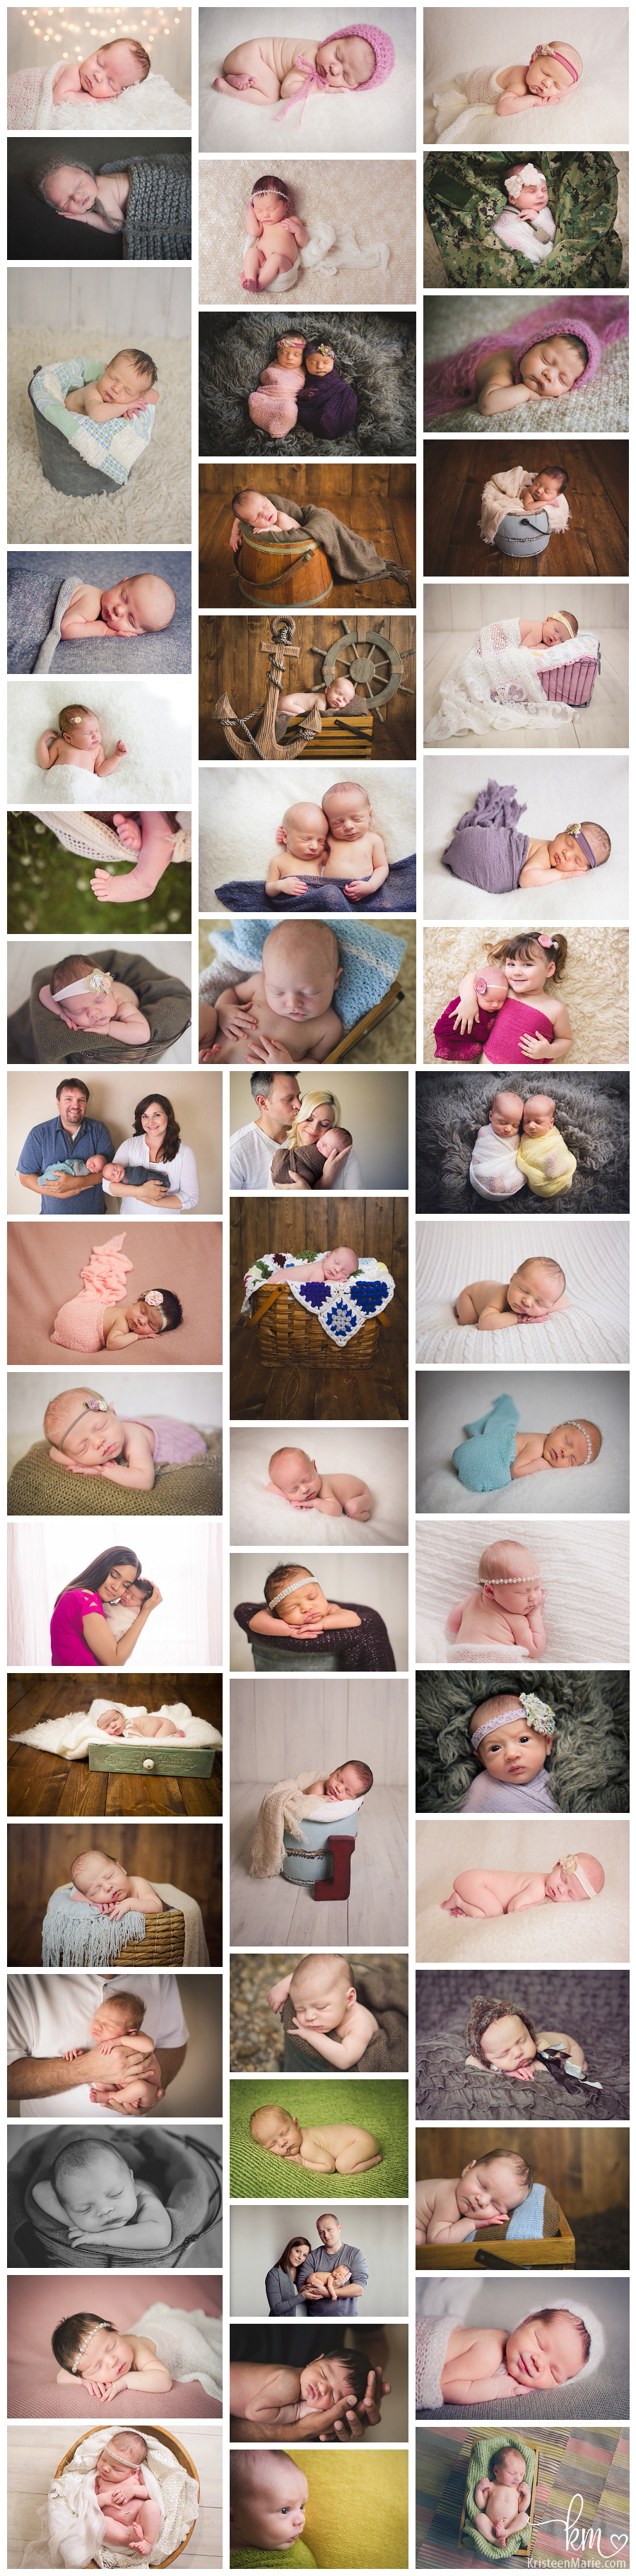 Indianapolis Newborn Photography by KristeenMarie Photography